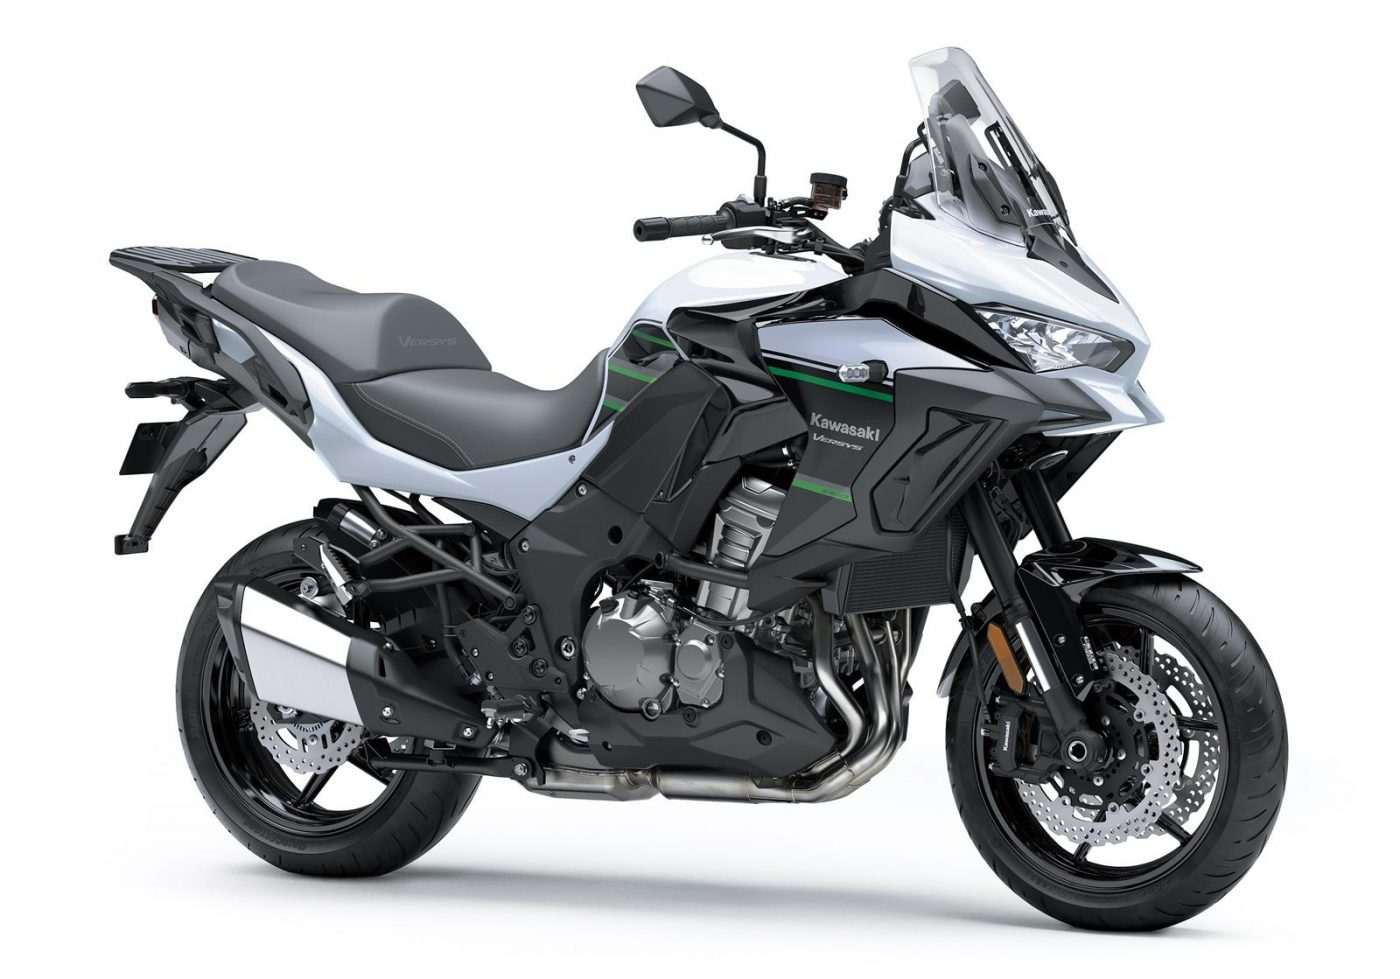 Kawasaki Versys 1000 Gets Massive Discounts, But There's A Catch